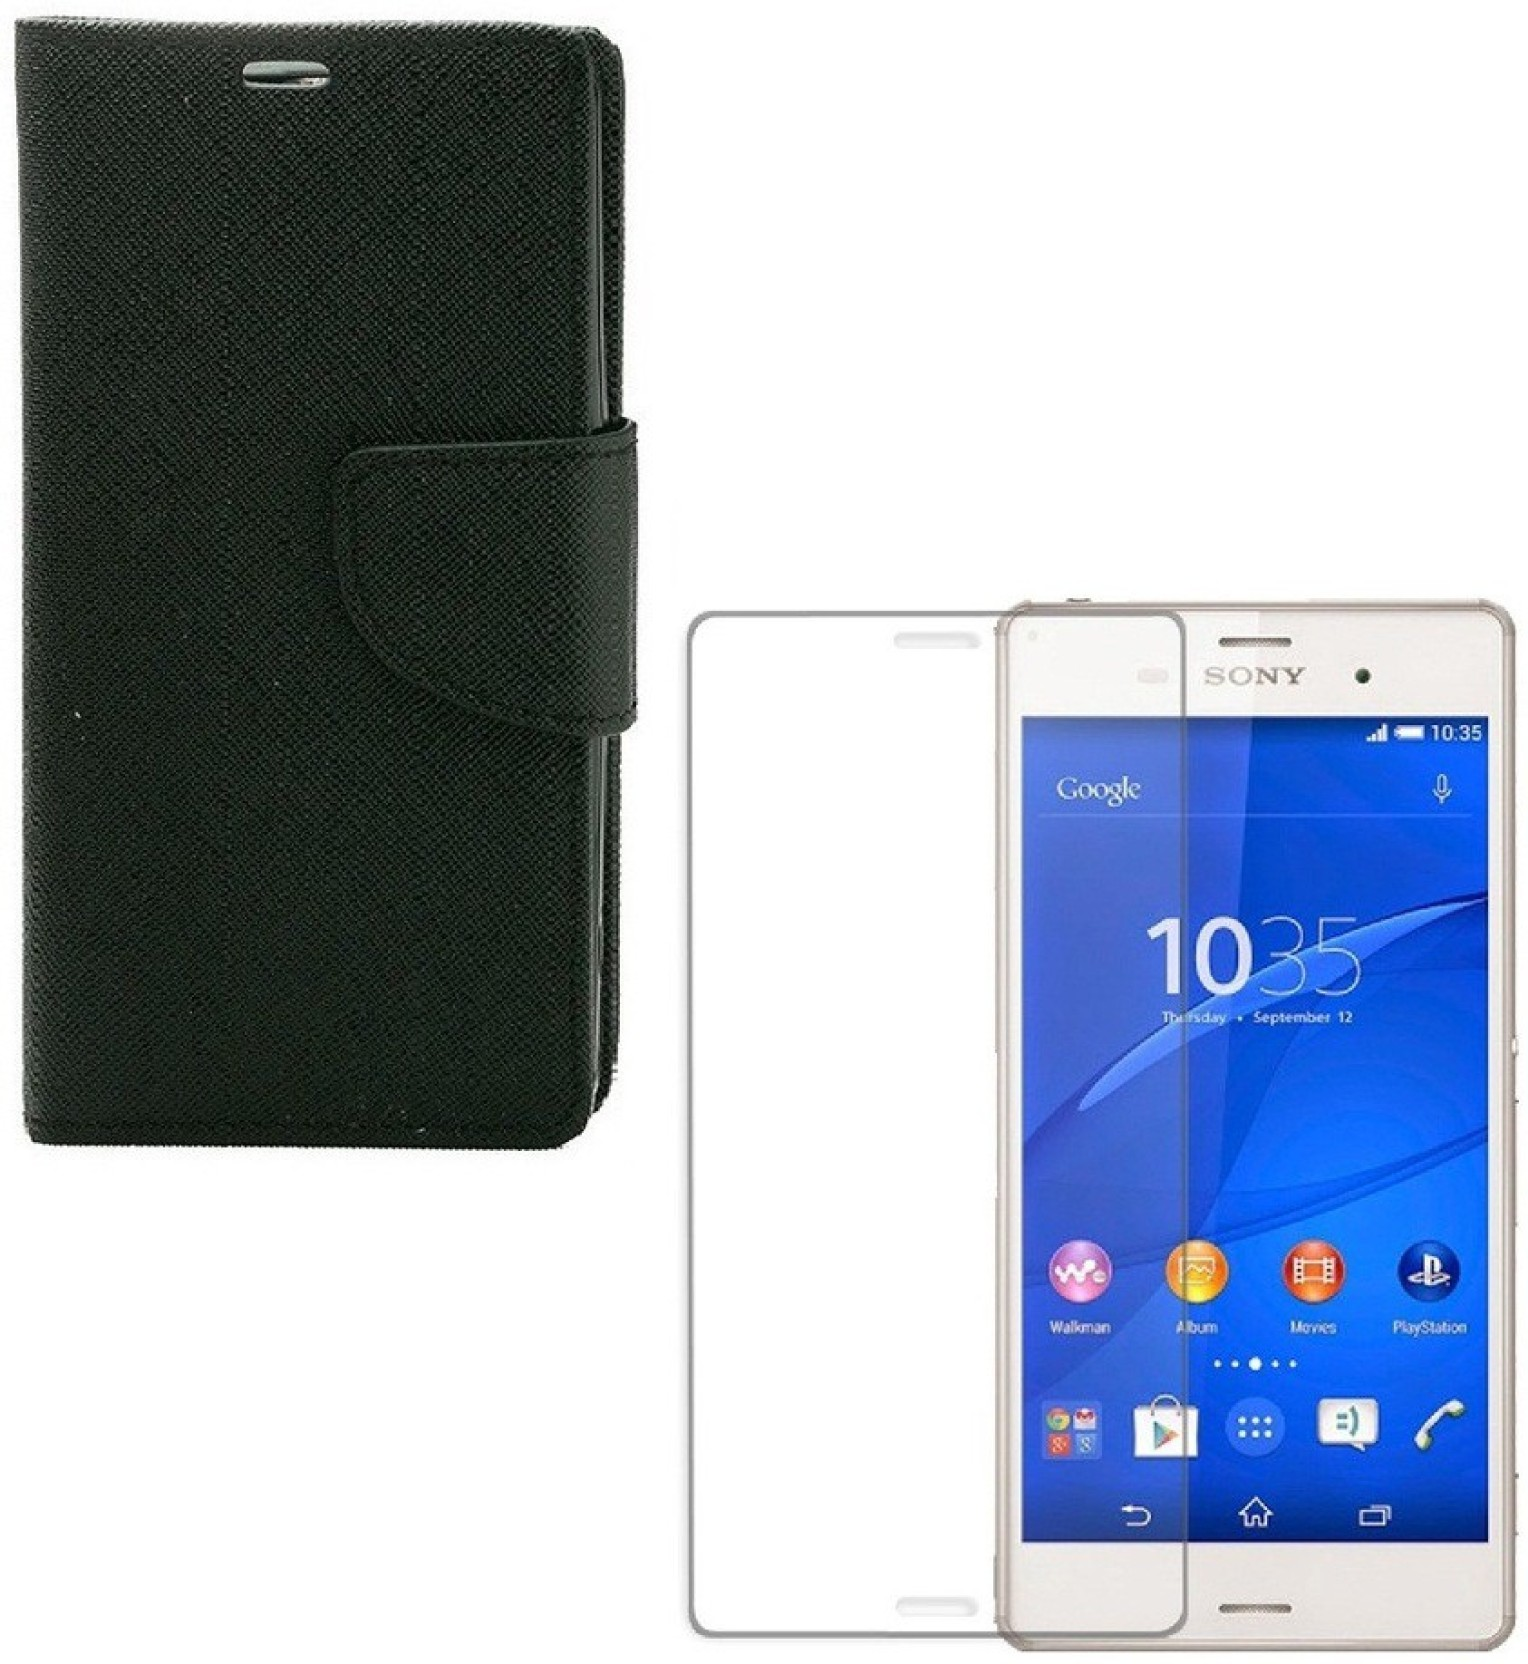 MOBIMAX Case Accessory Combo for Sony Xperia Z3 Price in India - Buy